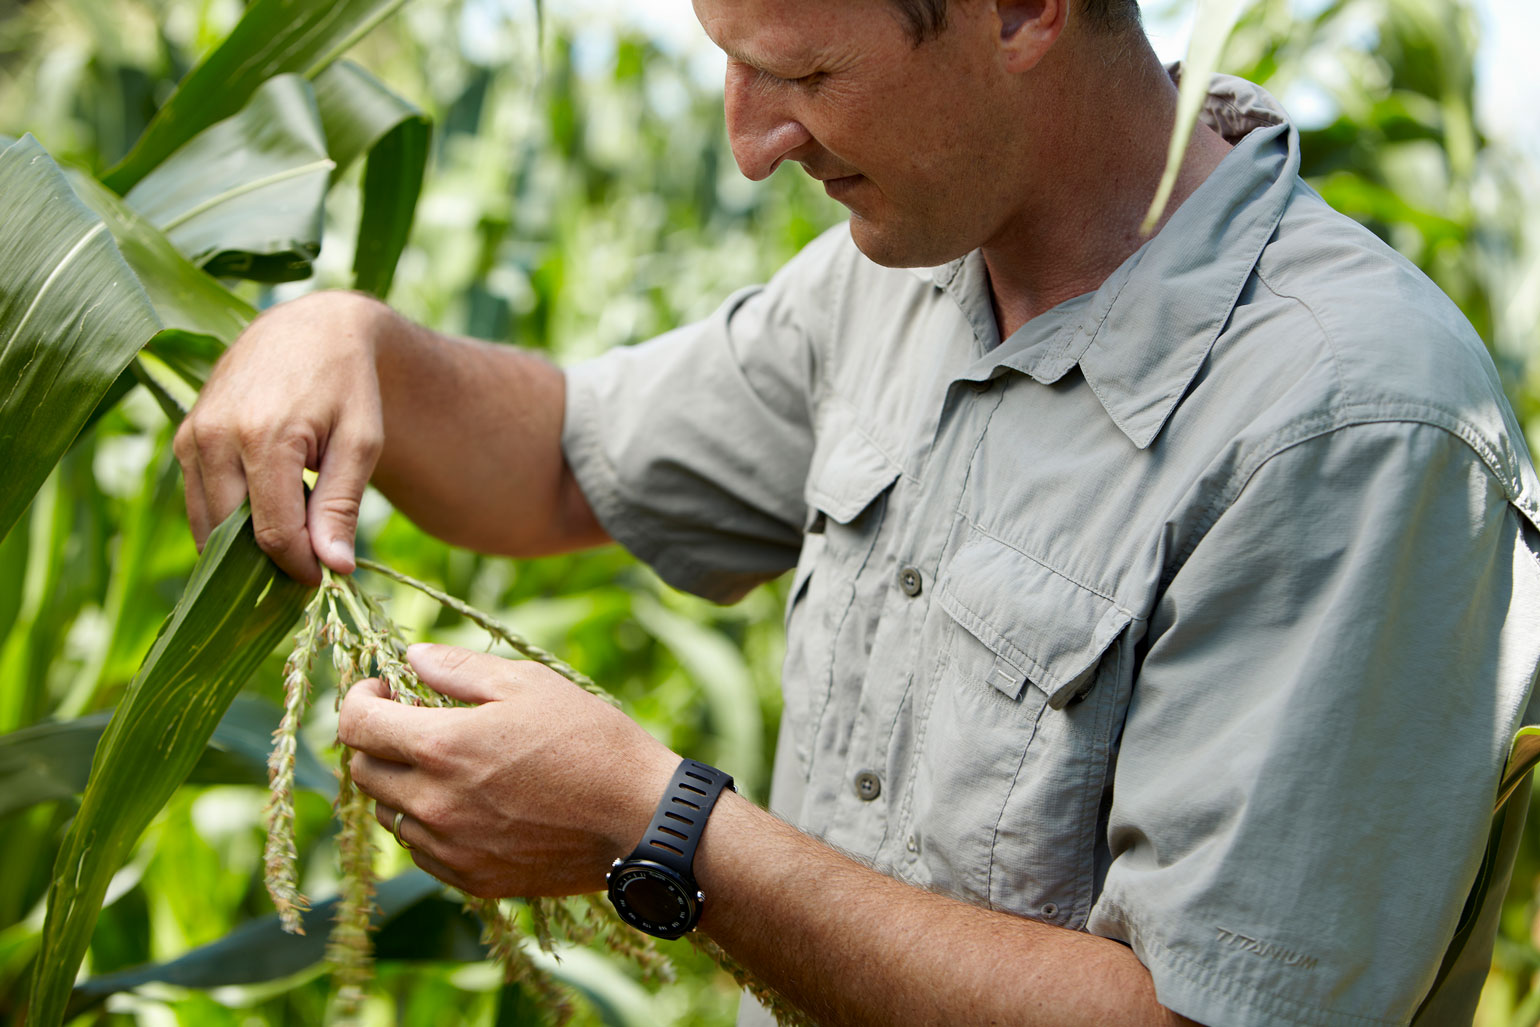 A farmer inspects the tassel of a corn plant